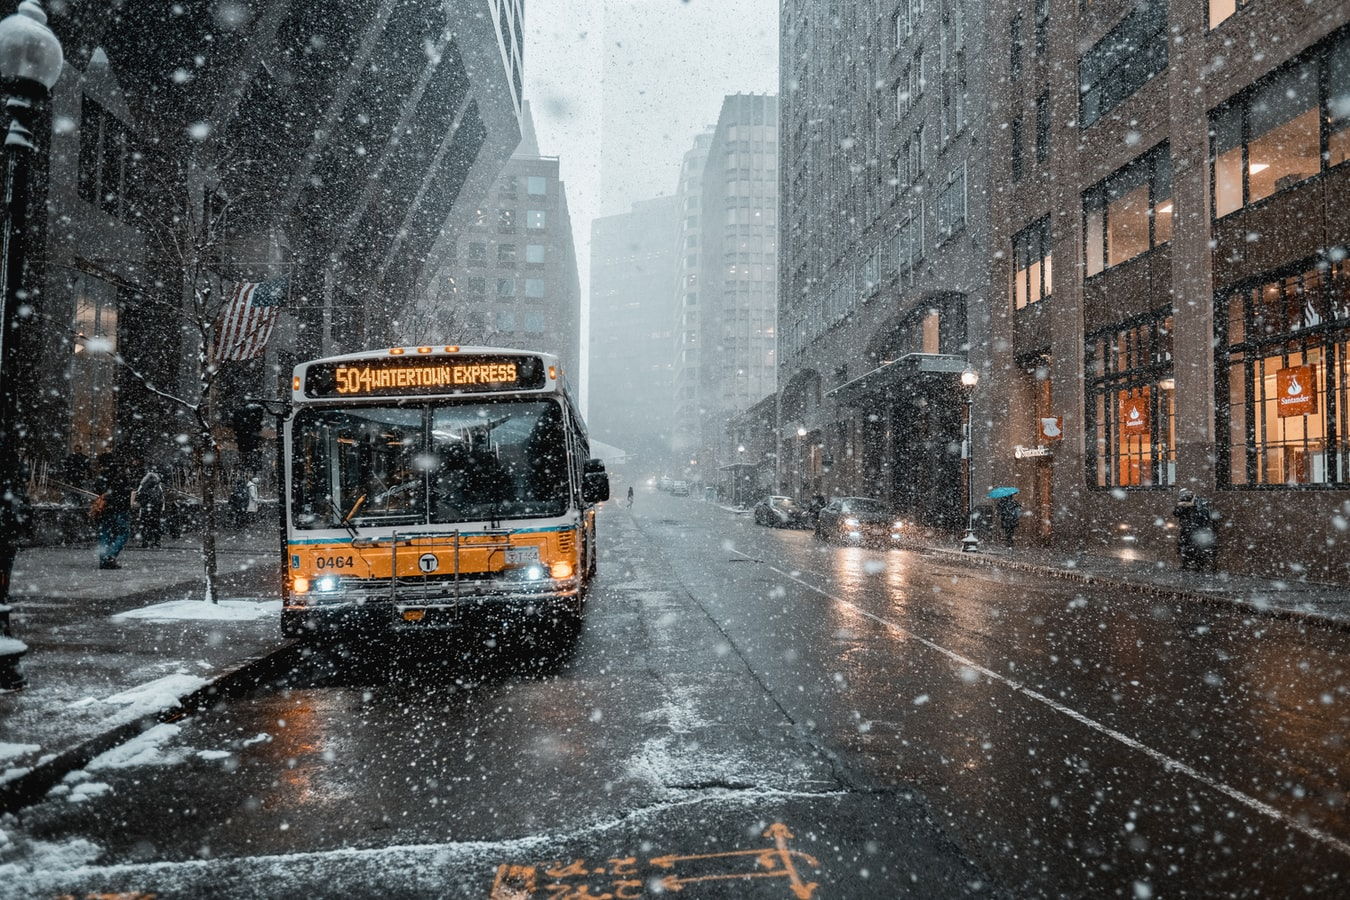 Yellow city bus on snowy road between buildings during daytime